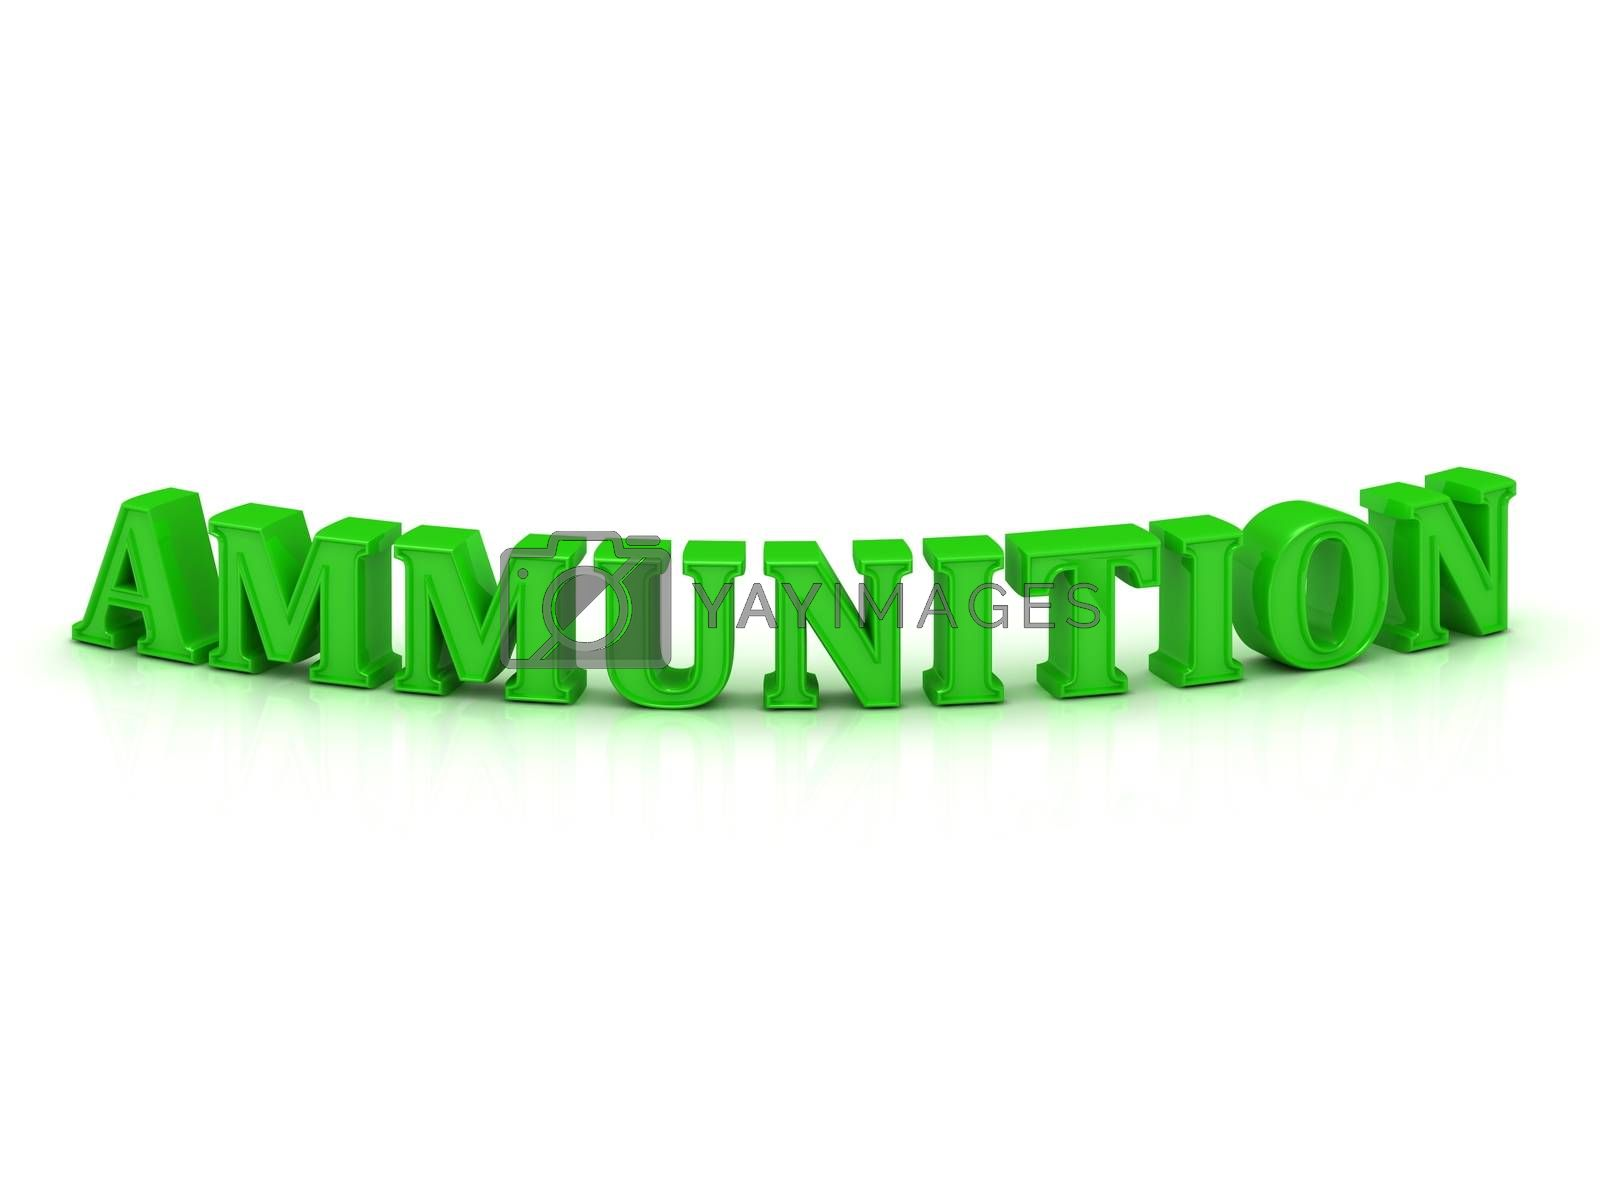 AMMUNITION  - bright green bend word on a white background